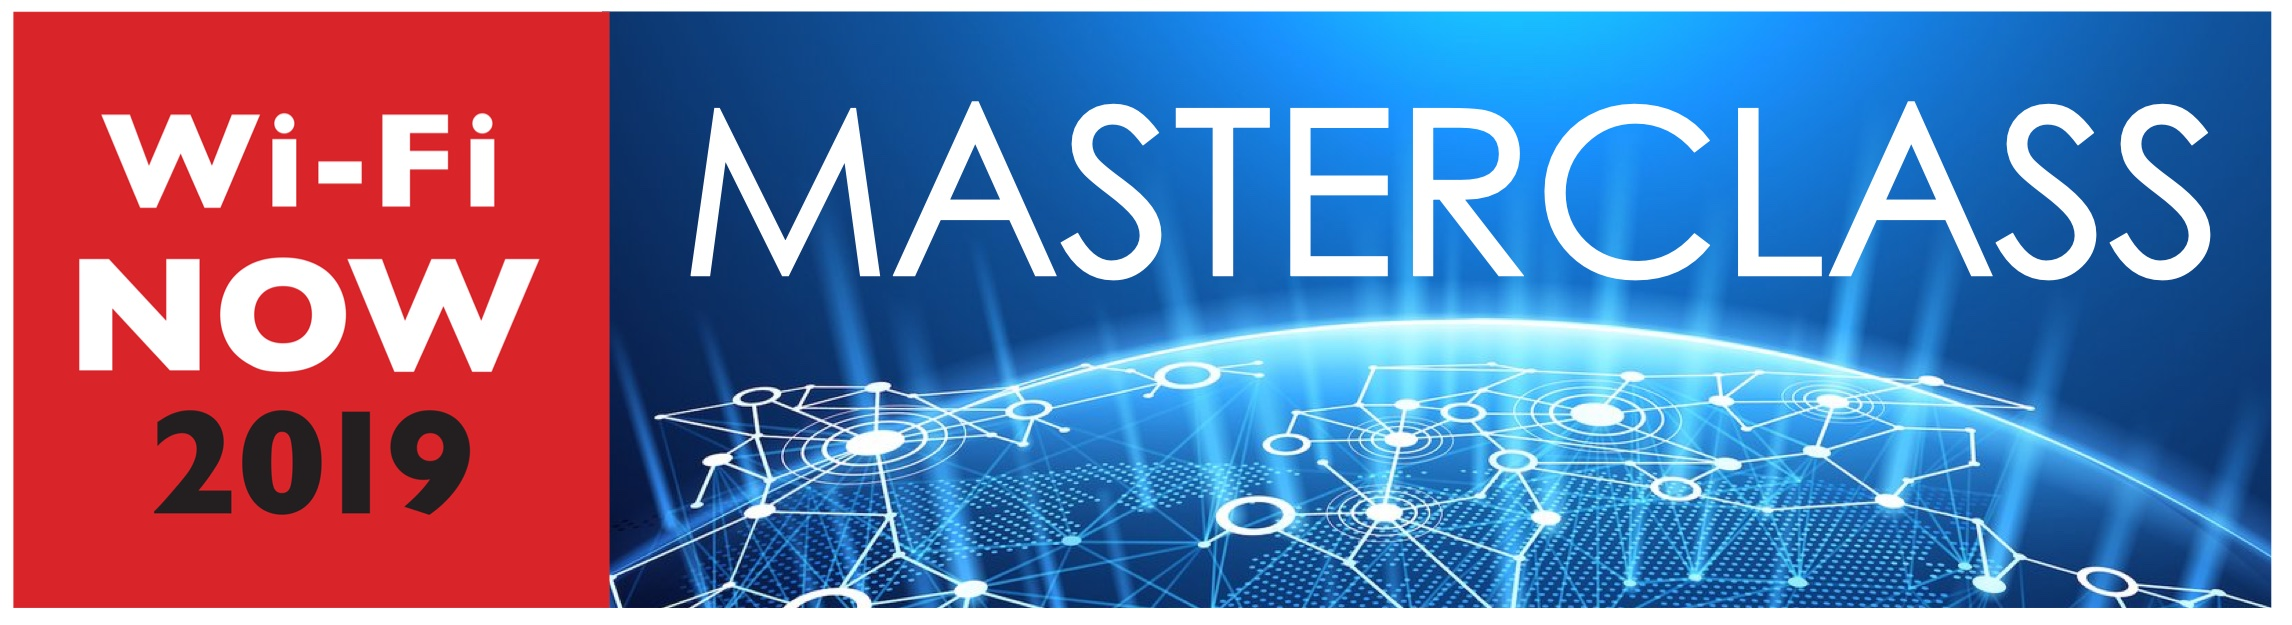 Masterclass at WiFi Now 2019